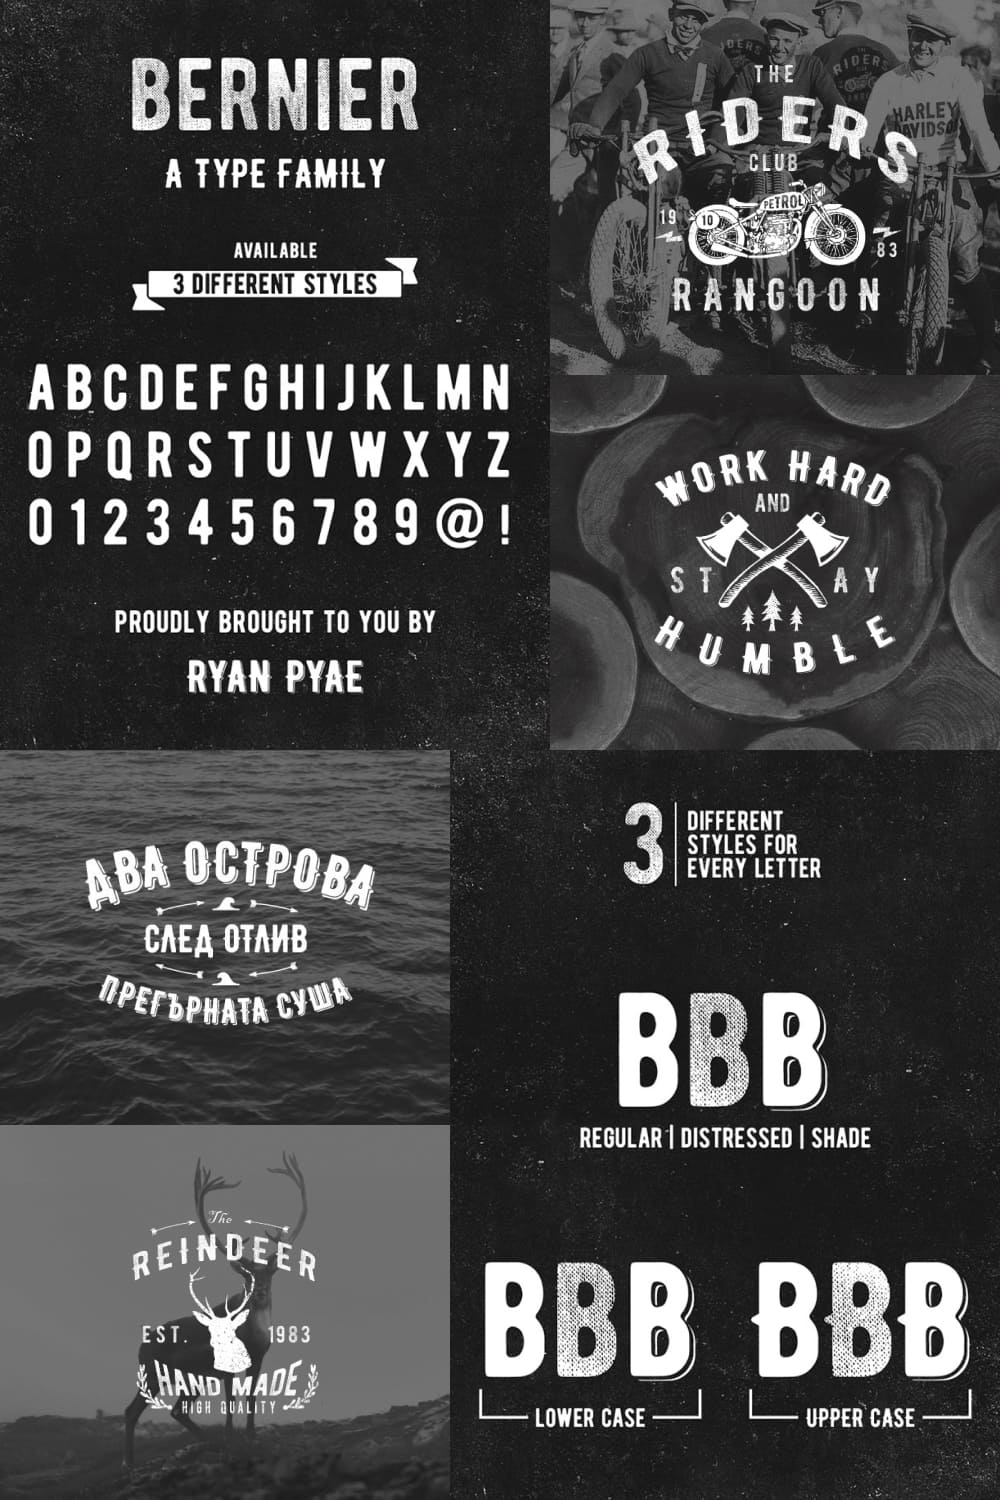 A vintage typeface that will look cool on textiles and glass.